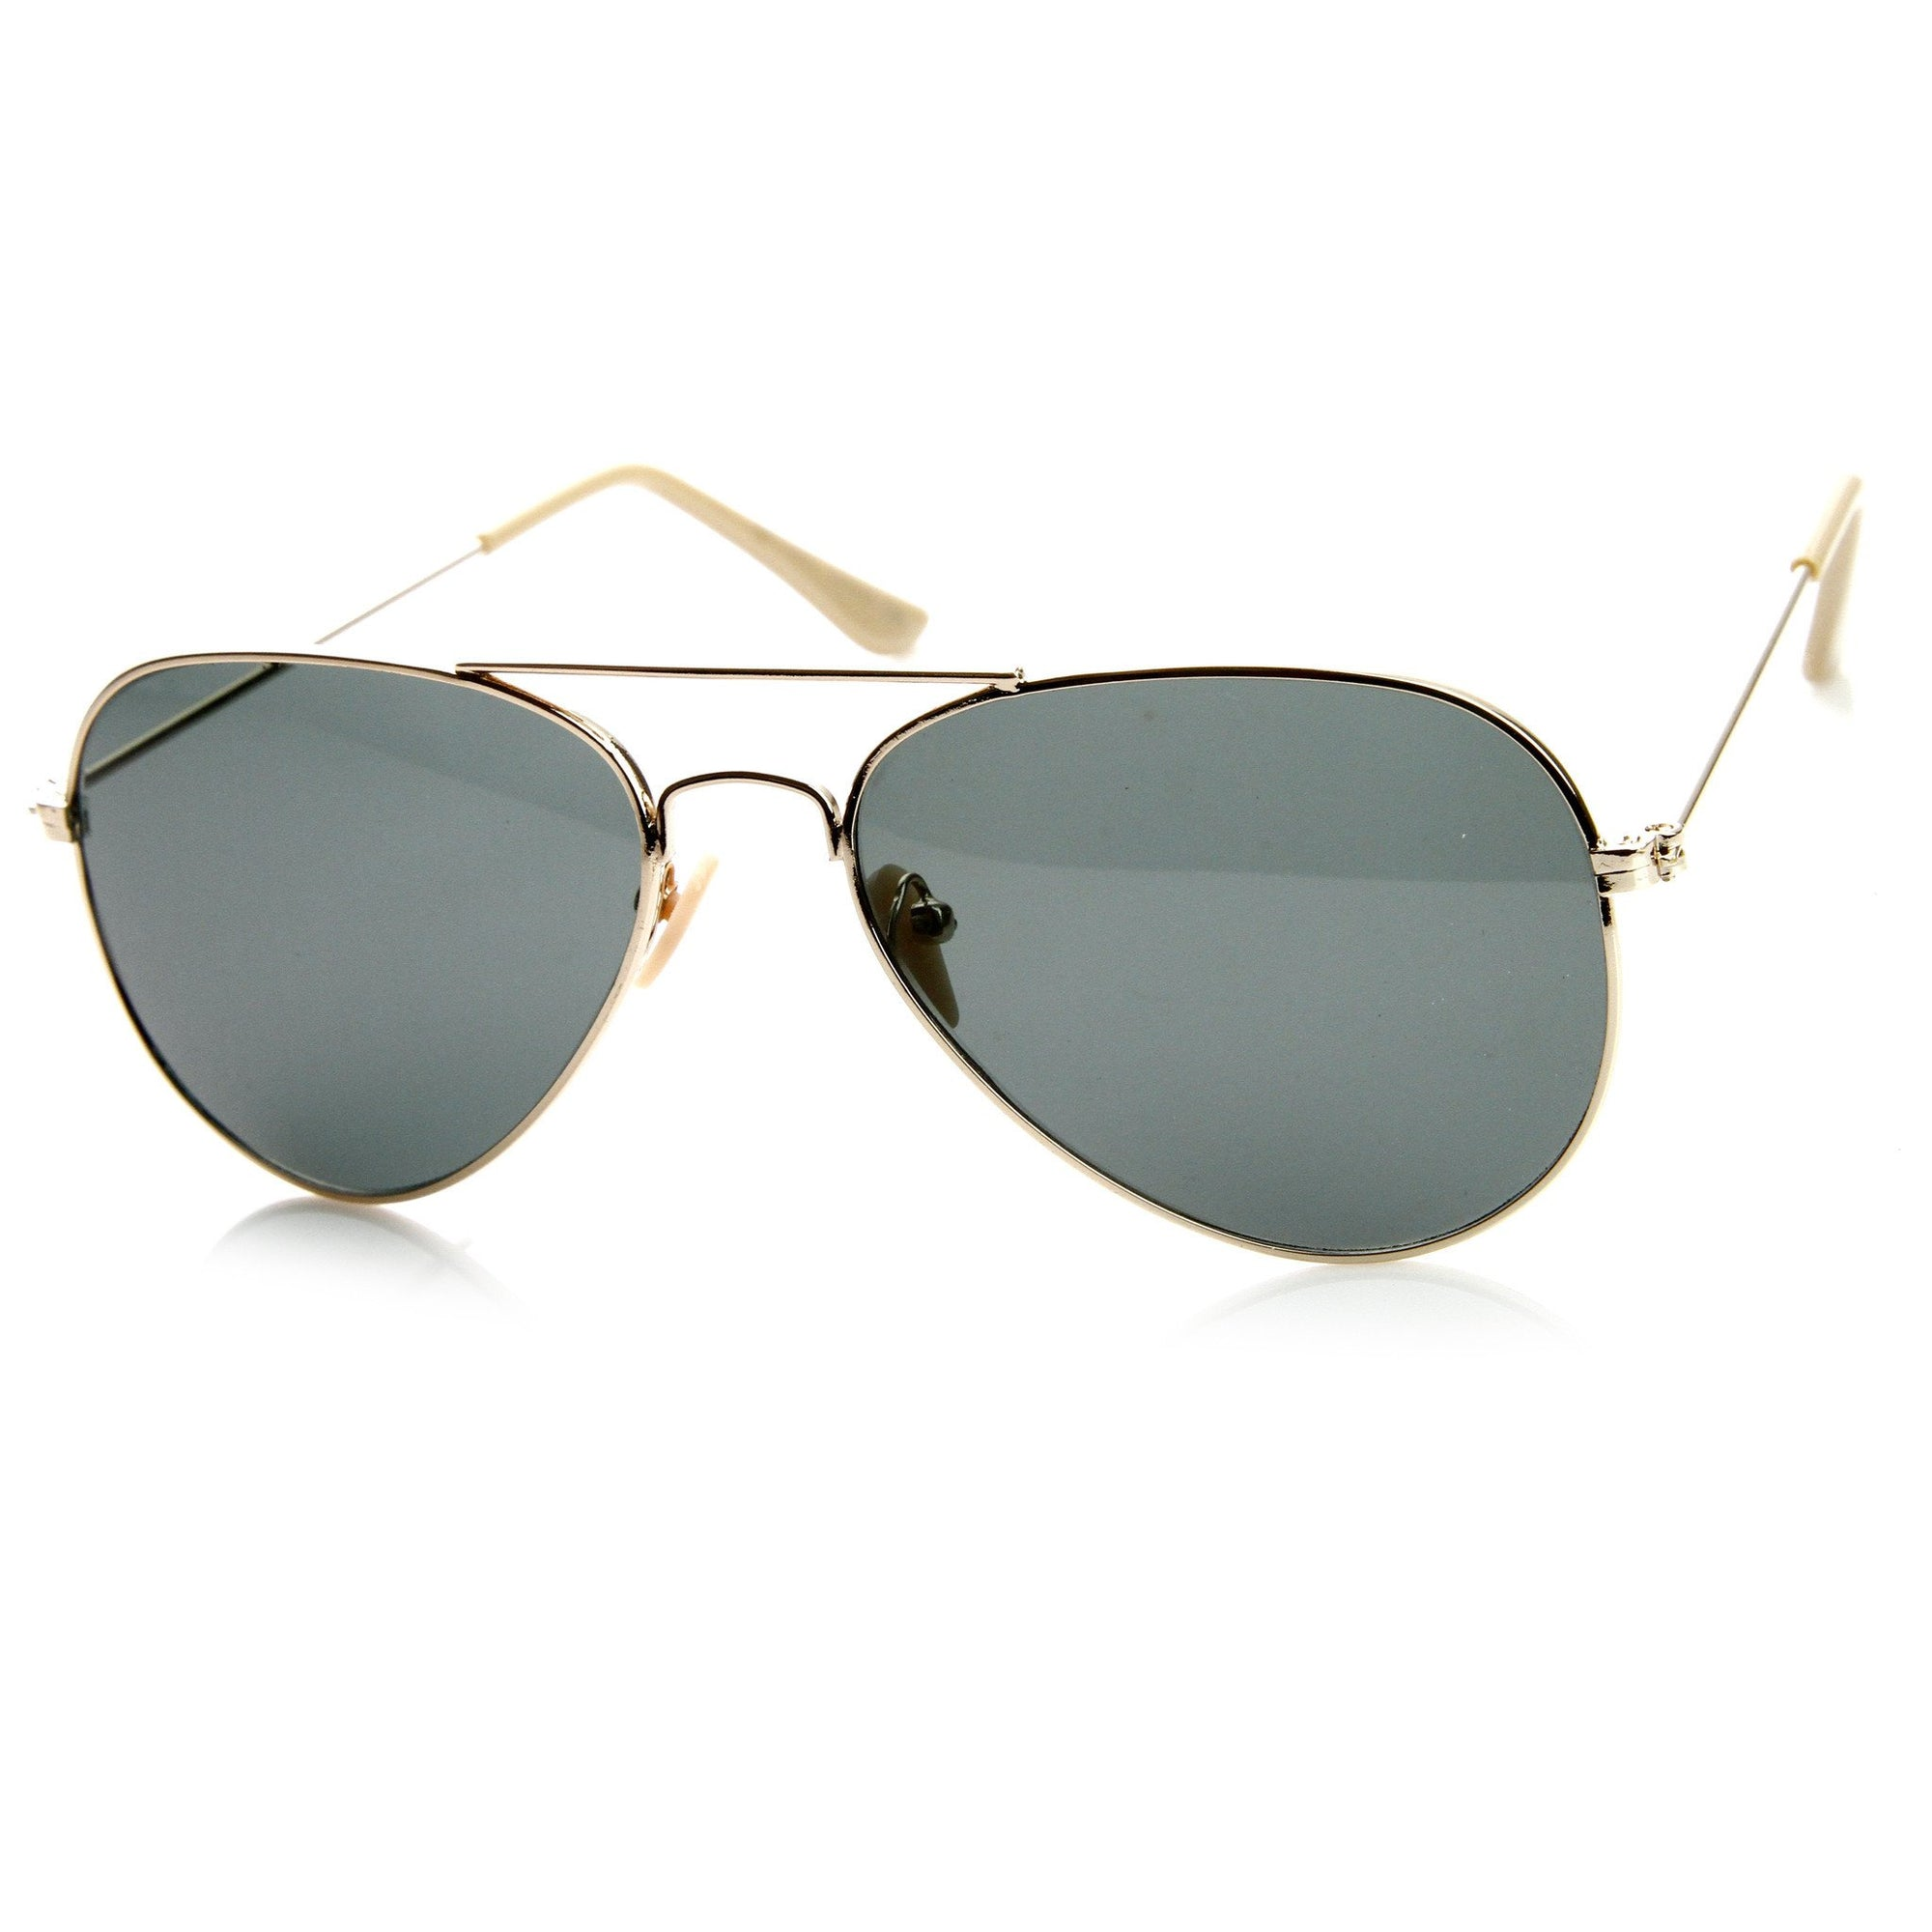 f0c727f370 ... Pilot Tear Drop Glass Lens Aviator Sunglasses 58mm 8840 · Gold · Gold